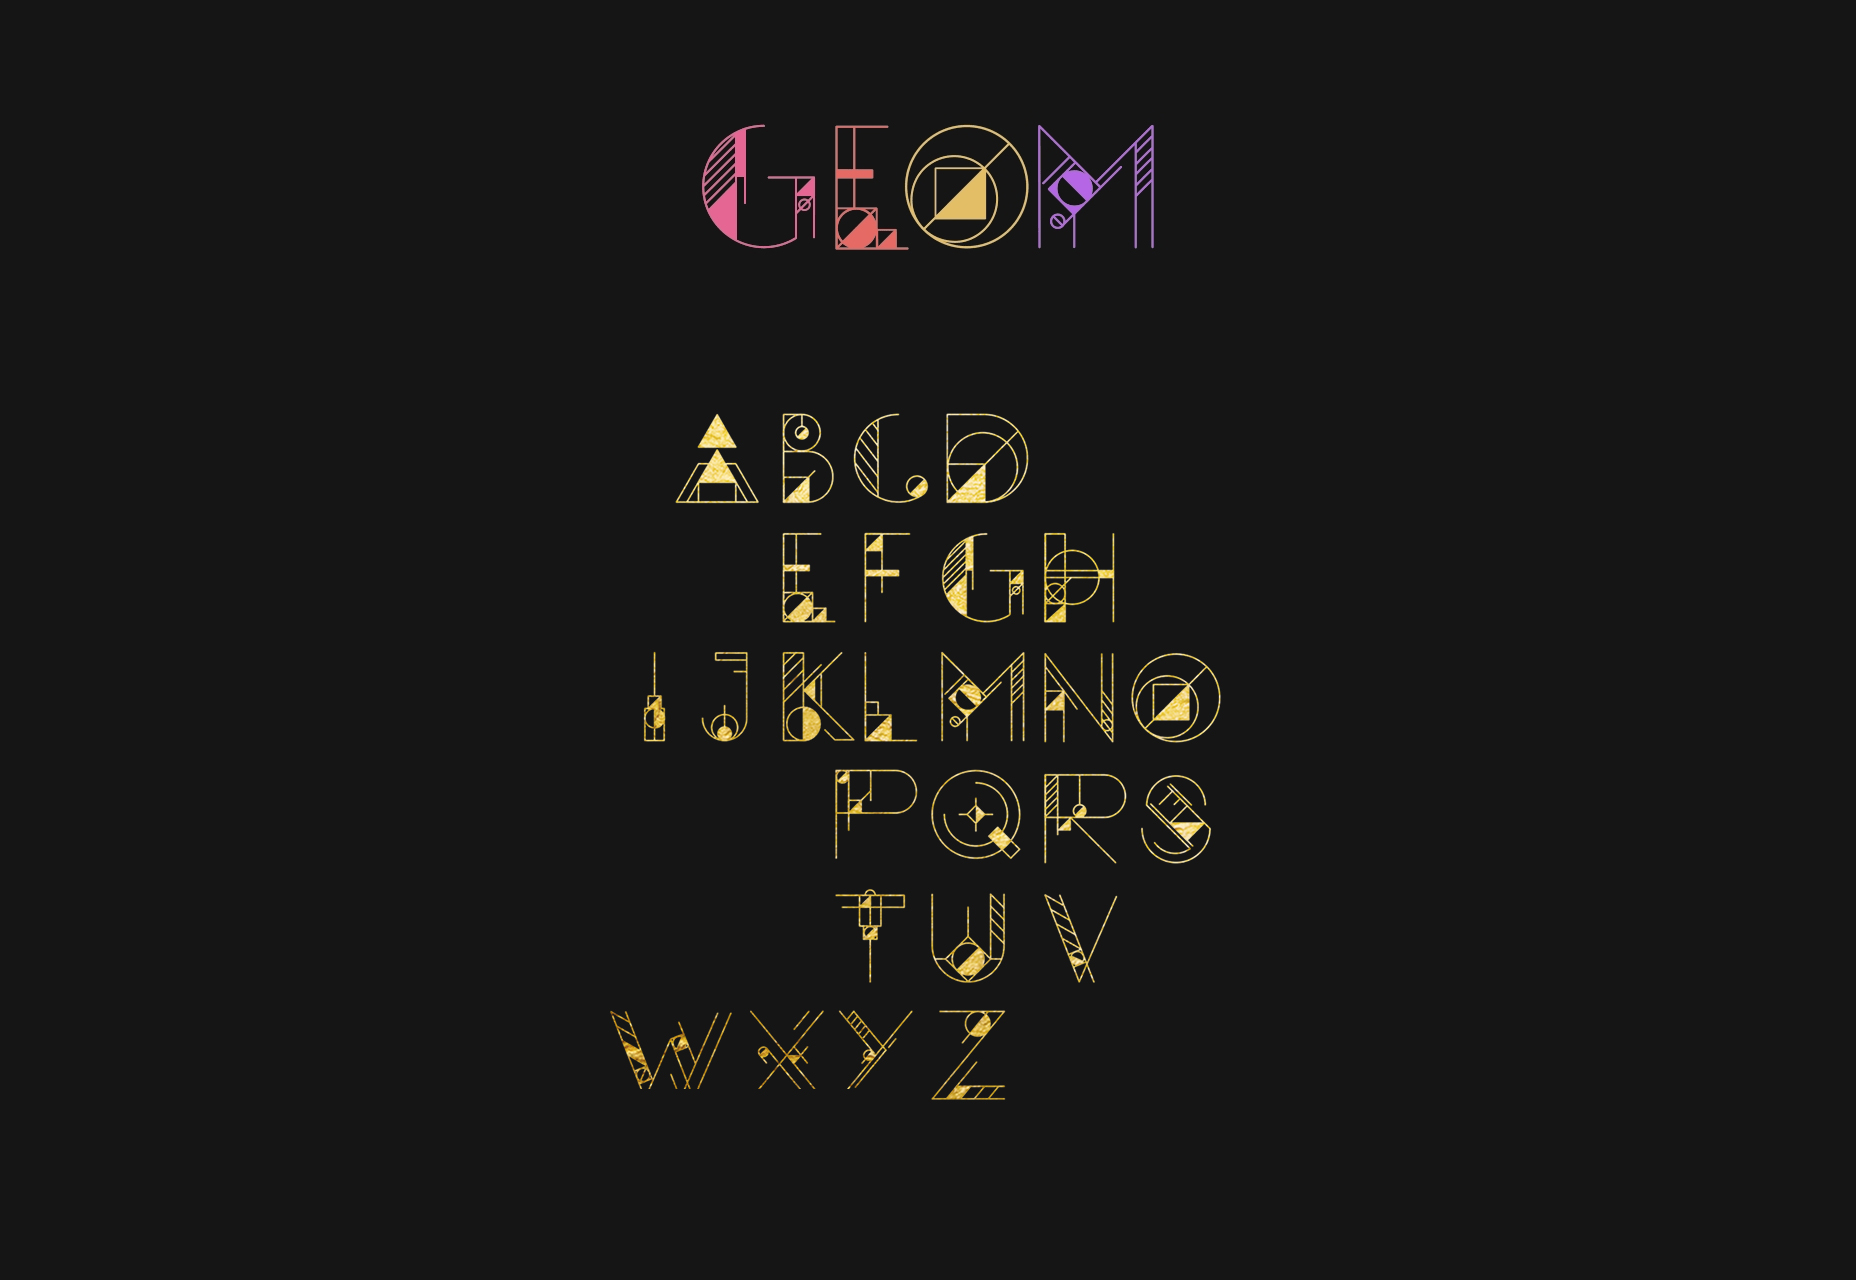 GEOM Display: An Fully Geometrically Adorned TypeFace